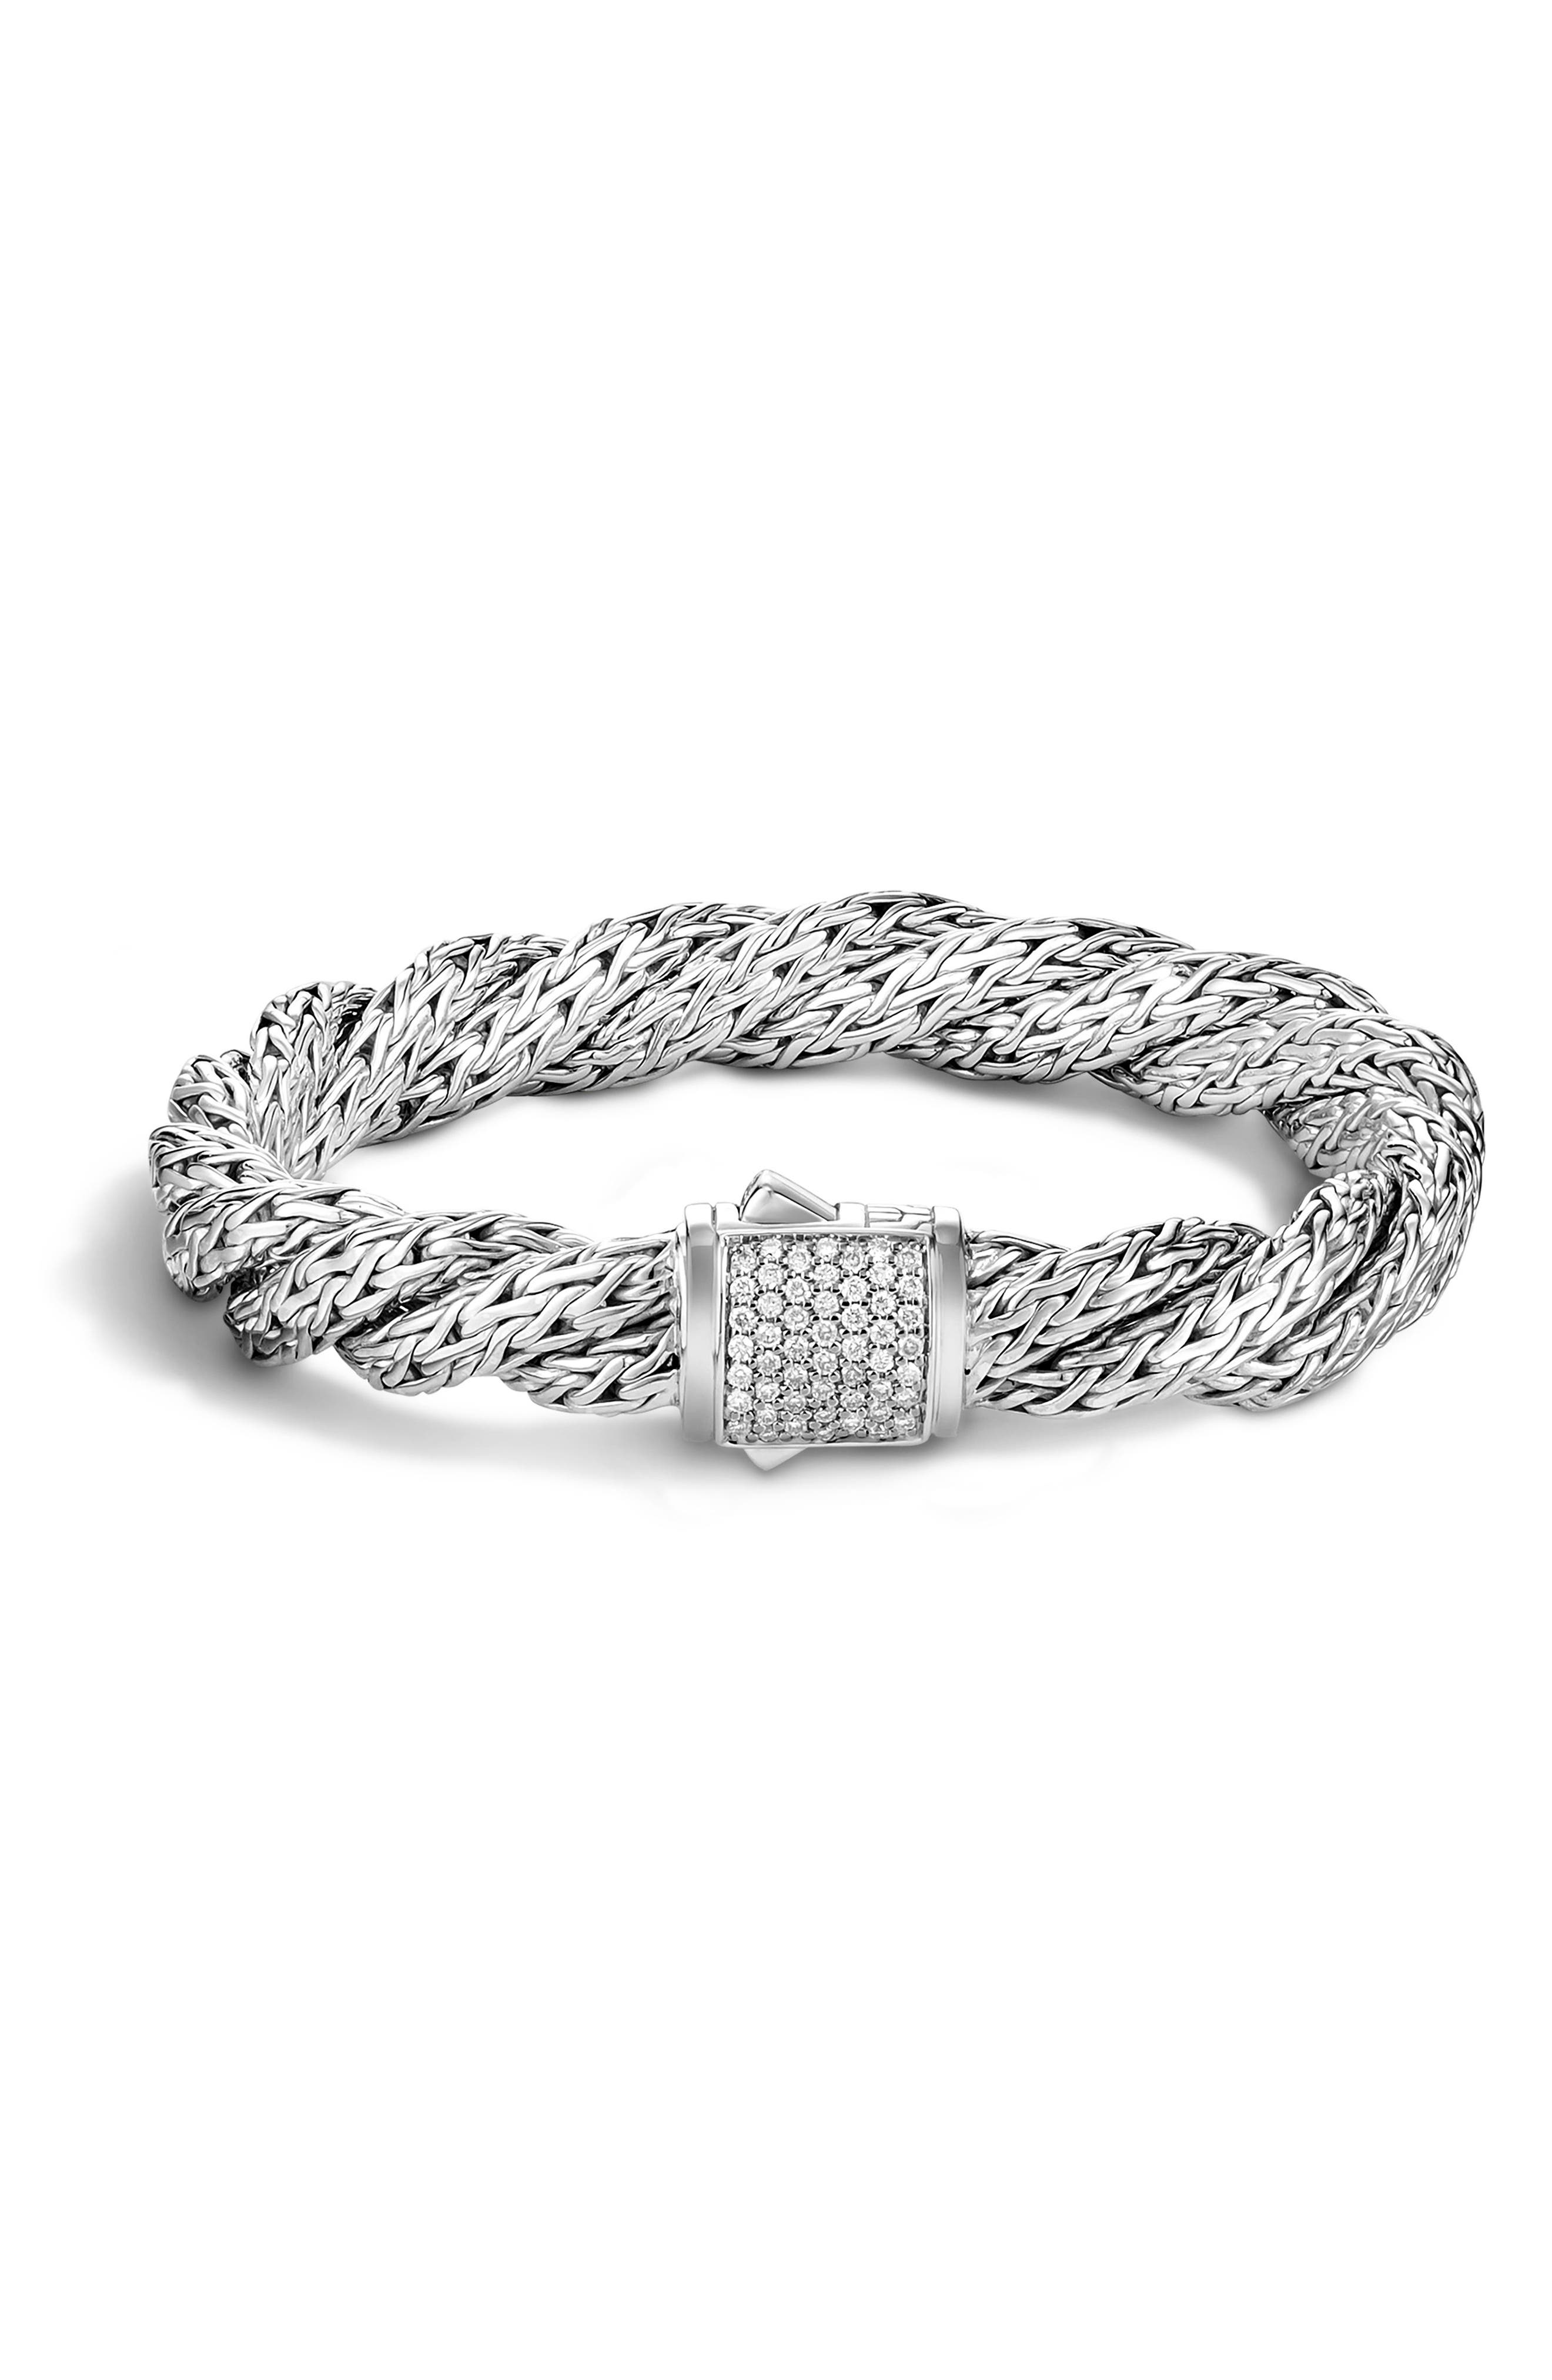 JOHN HARDY,                             Twist Chain Pavé Diamond Bracelet,                             Main thumbnail 1, color,                             SILVER/ DIAMOND